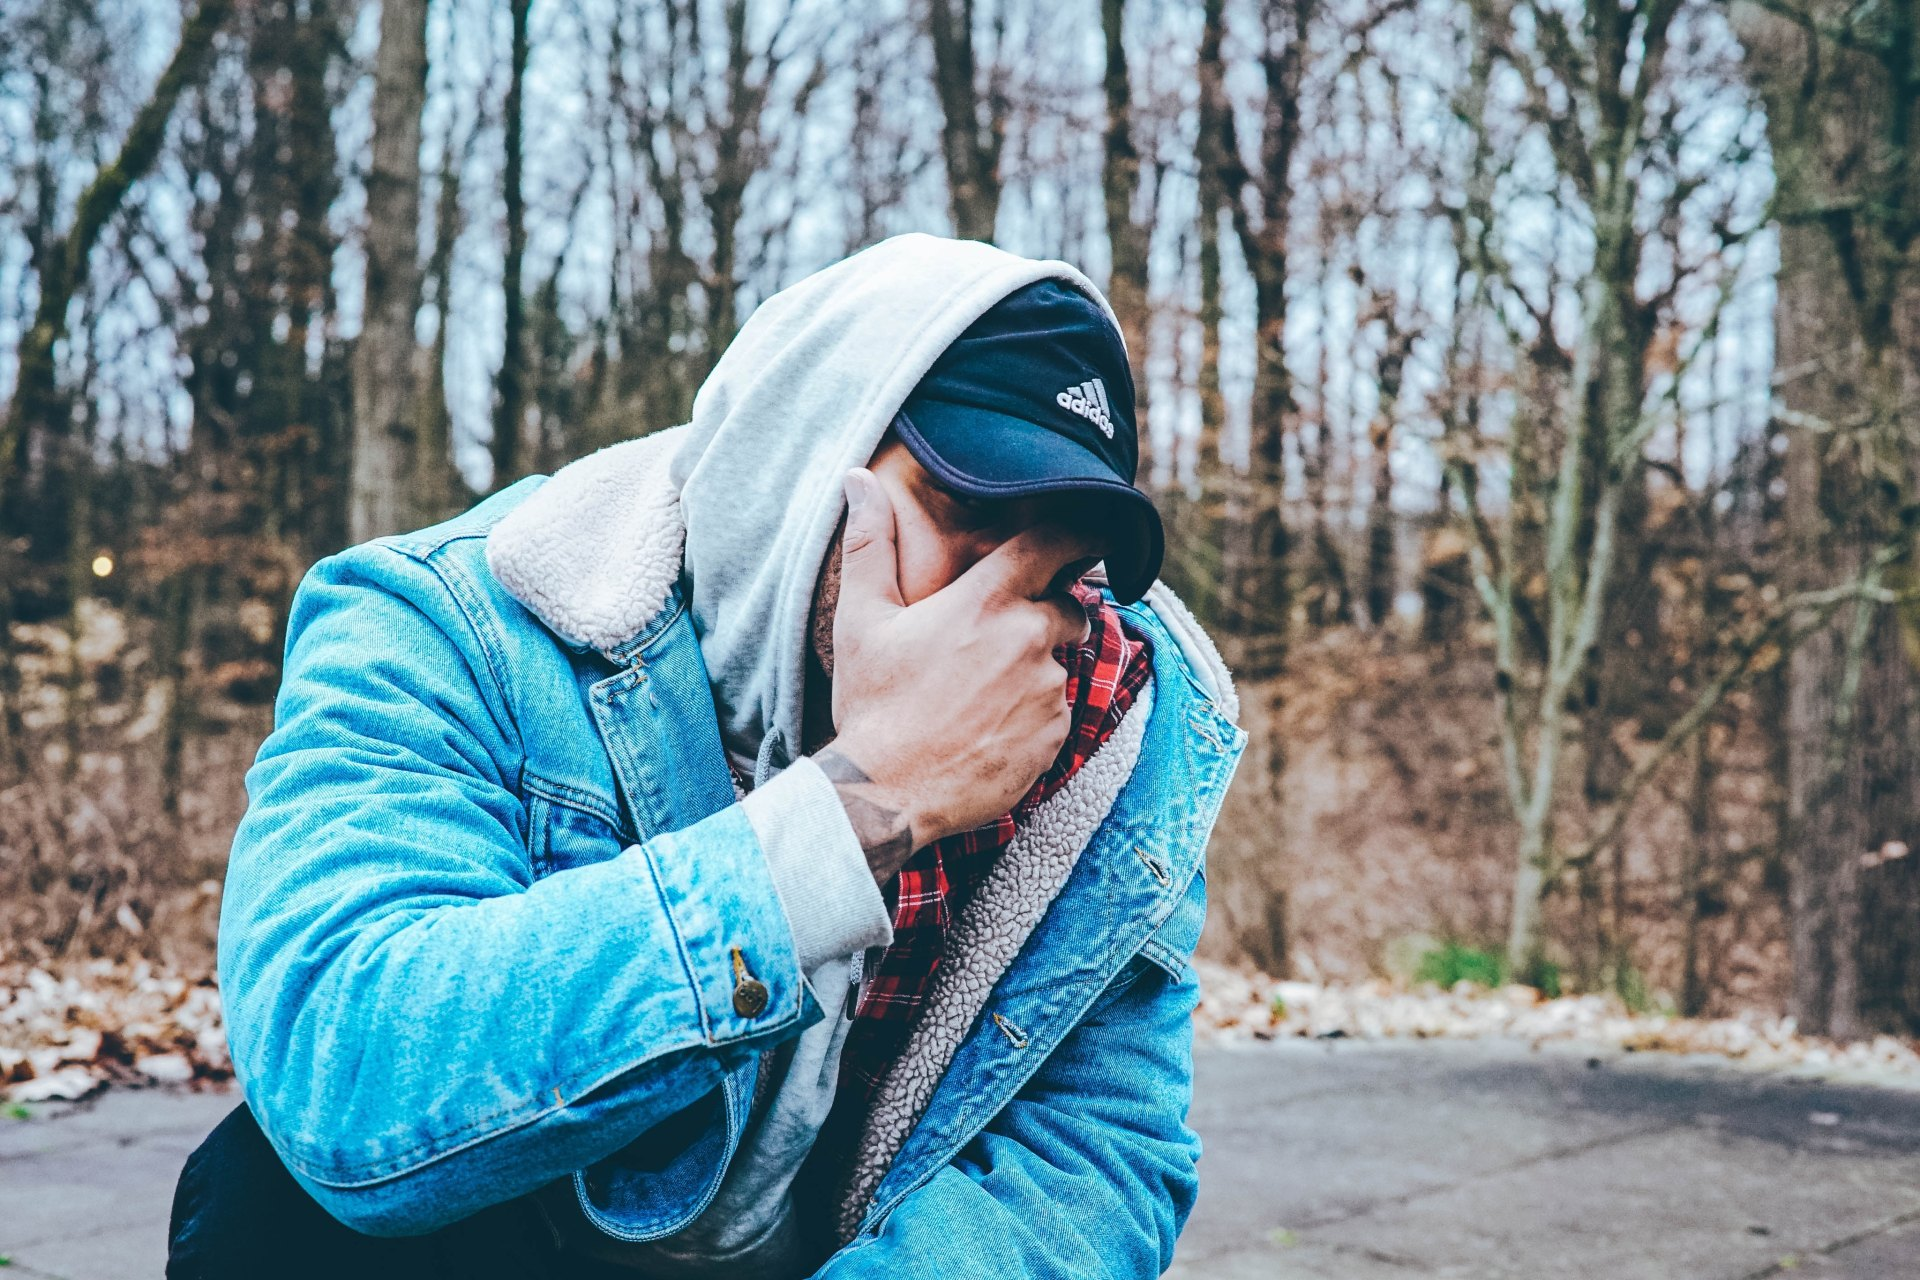 guy in jean jacket covering his face